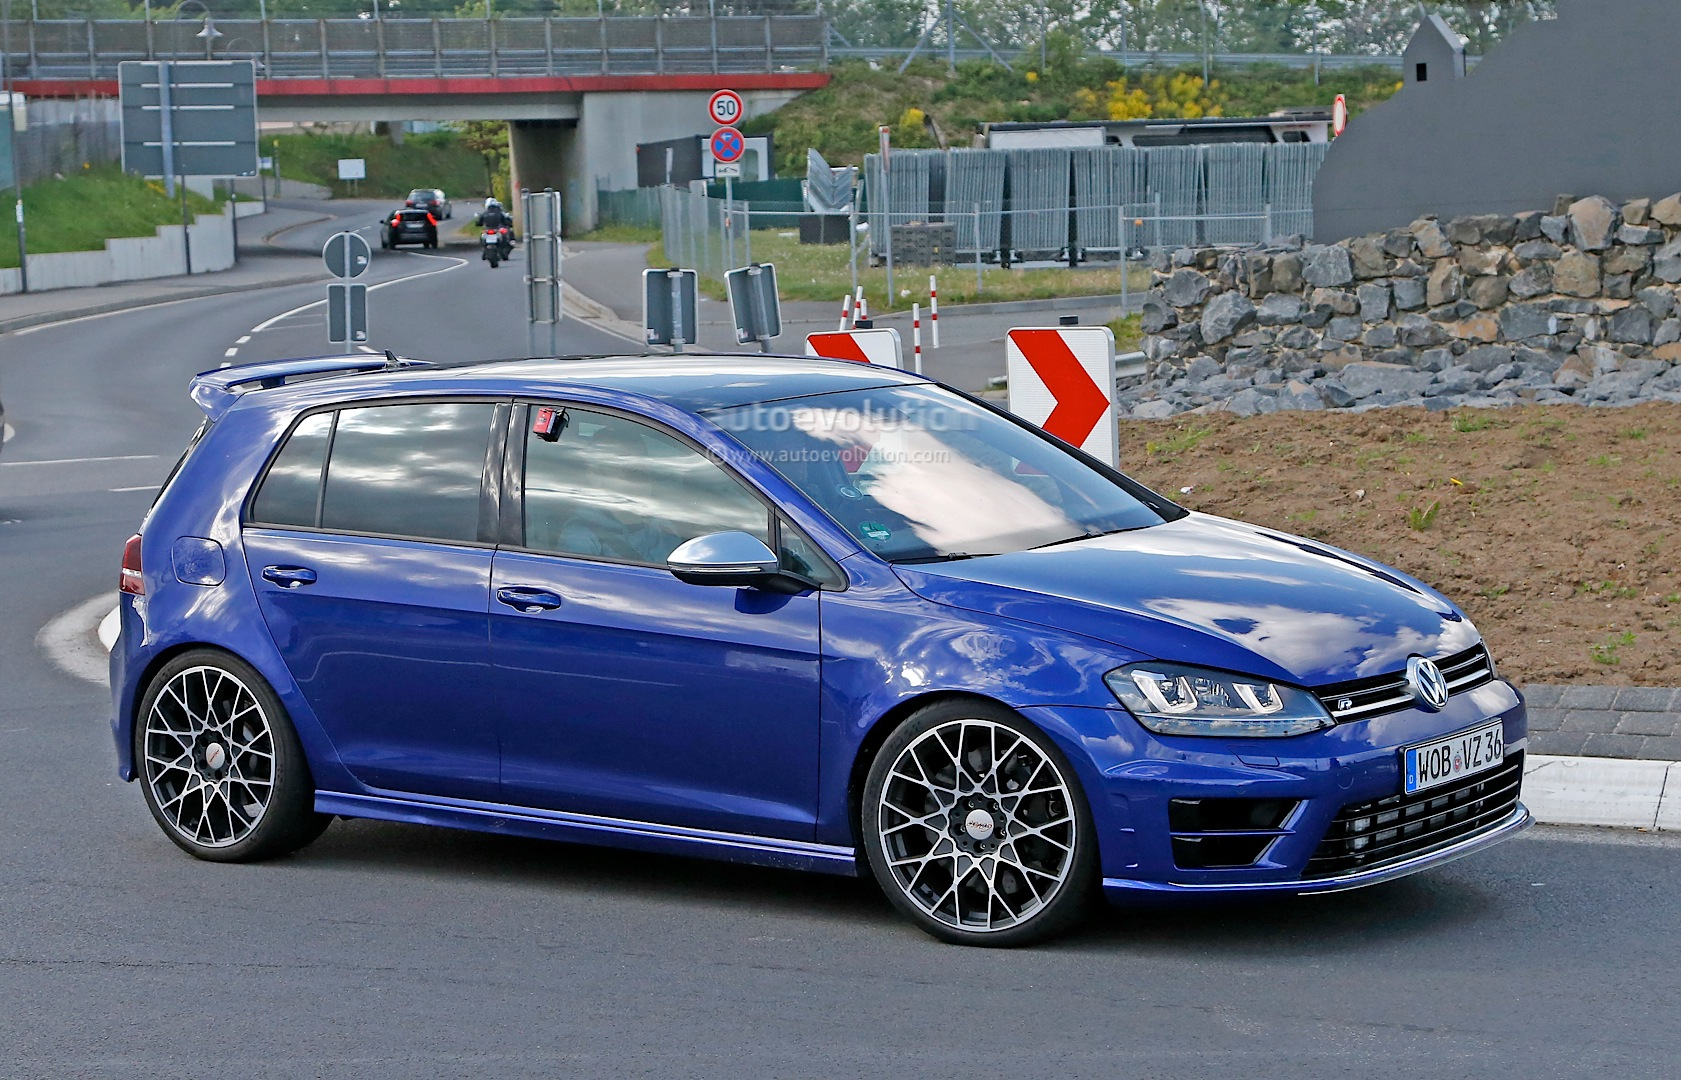 2016 Volkswagen Golf R400 First Spy Photos Show Hyper ...